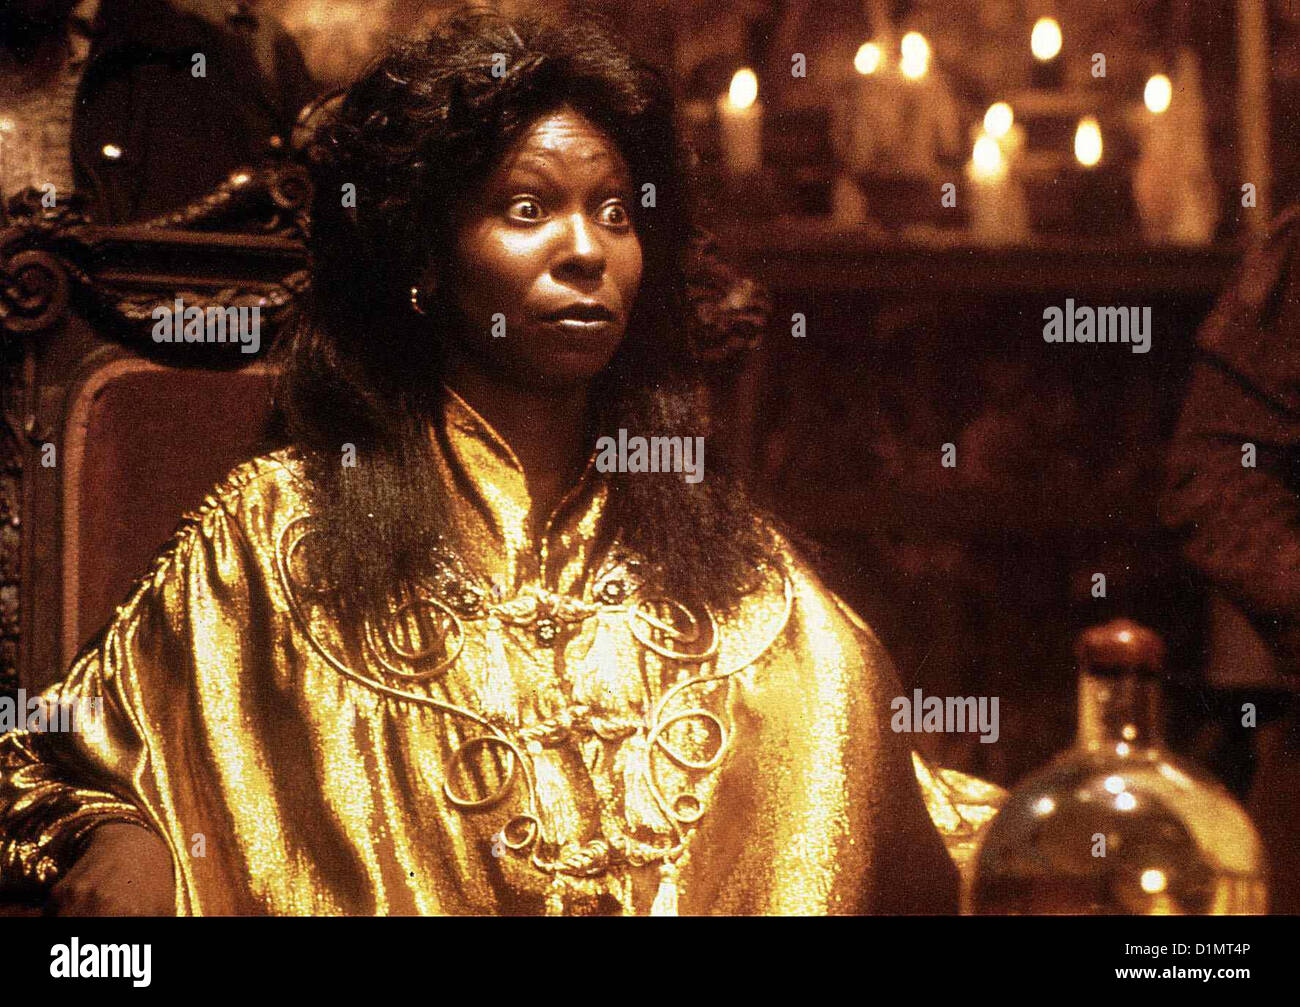 Image result for whoopi ghost gold costume